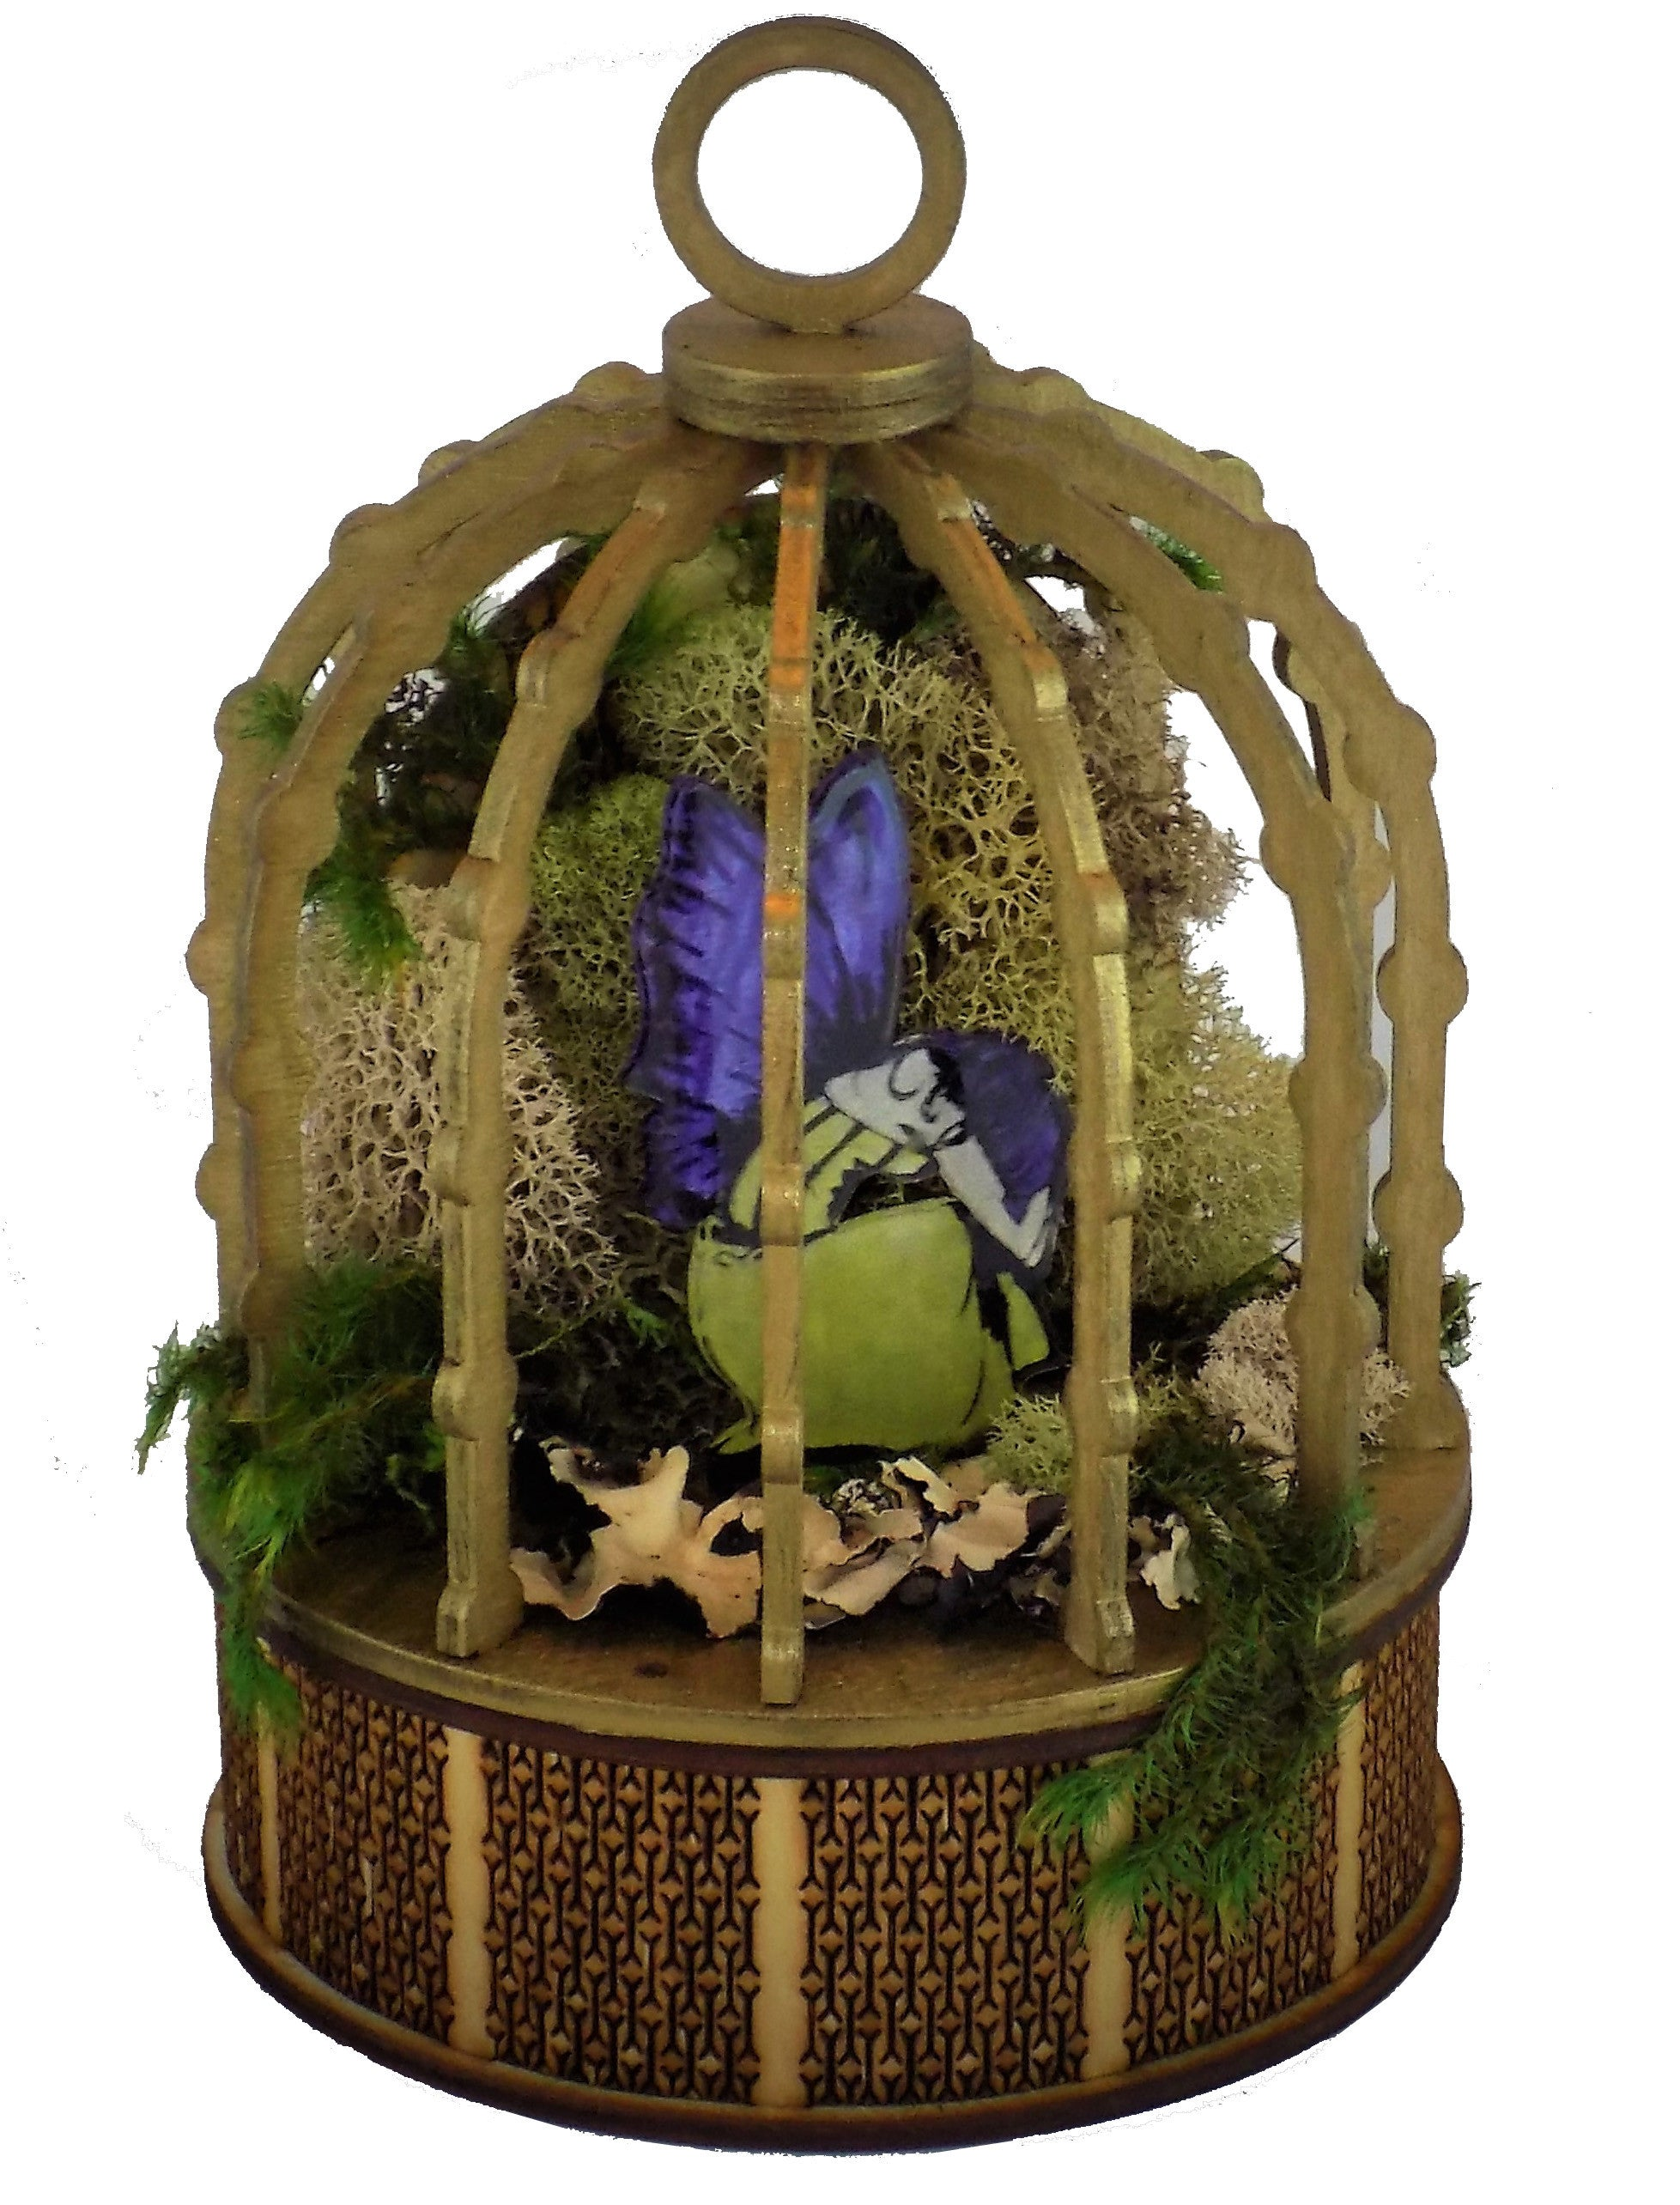 Caged Faerie Kit